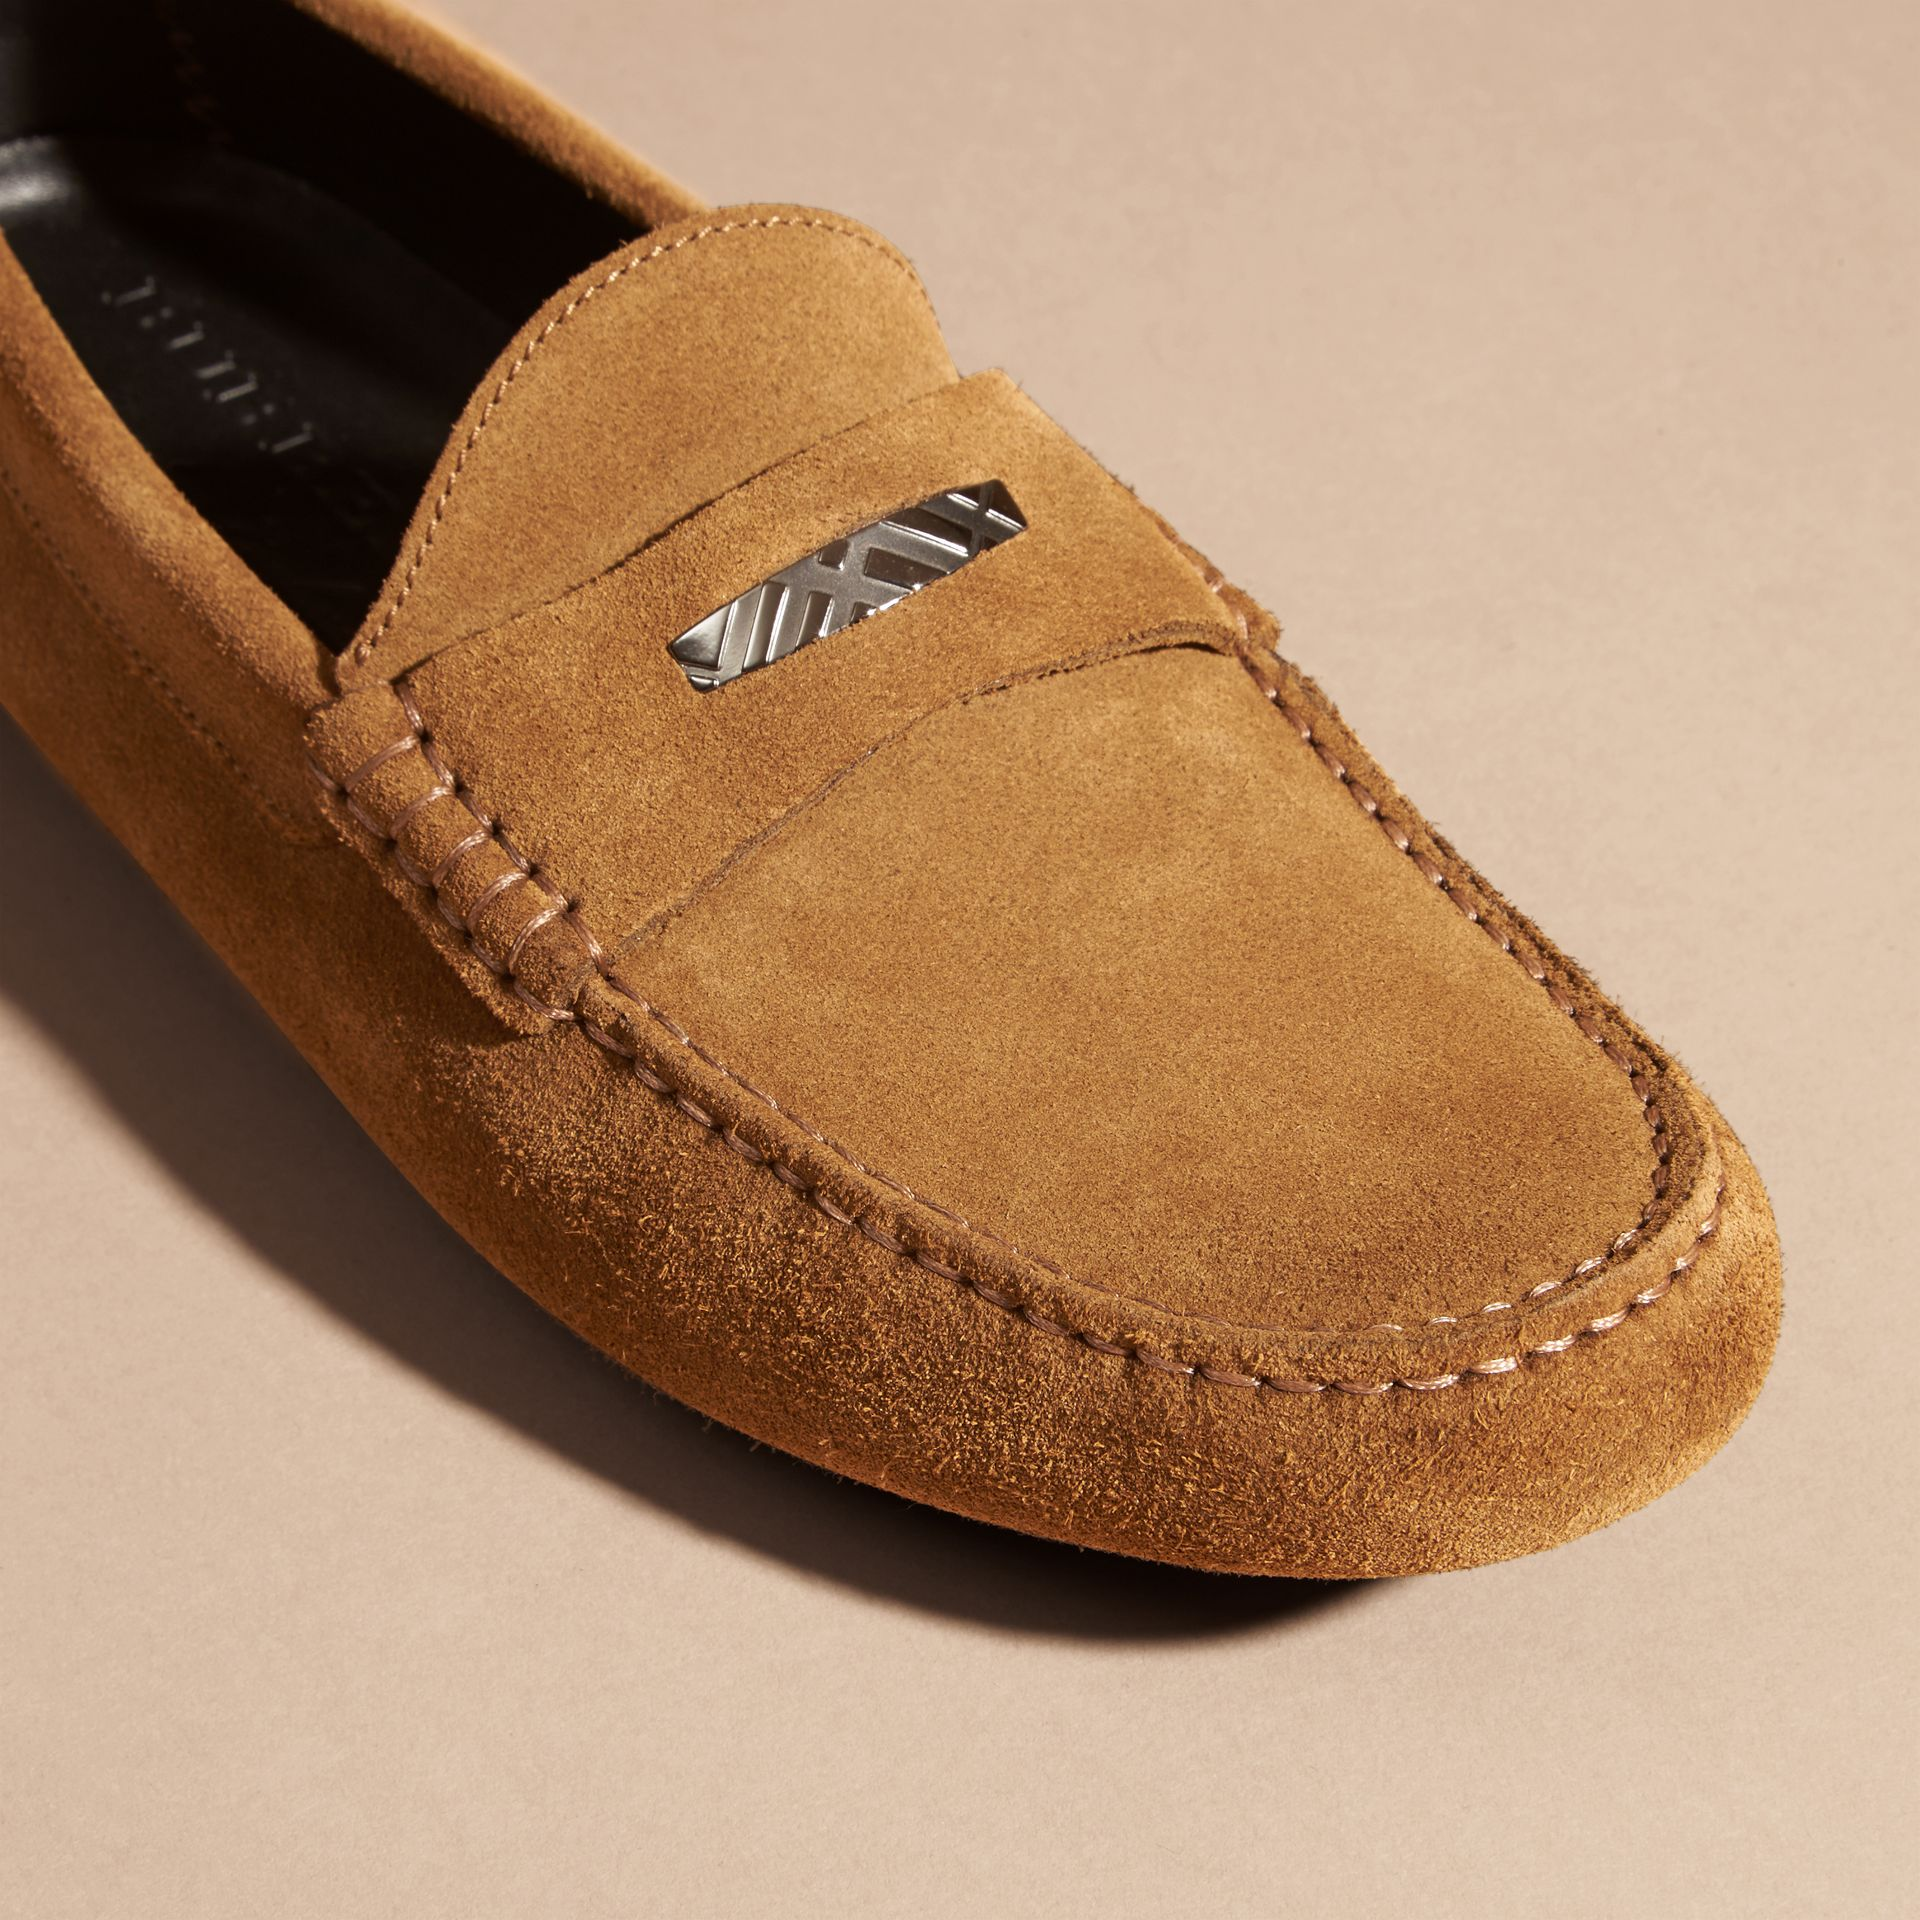 Caramel Suede Loafers with Engraved Check Detail Caramel - gallery image 2